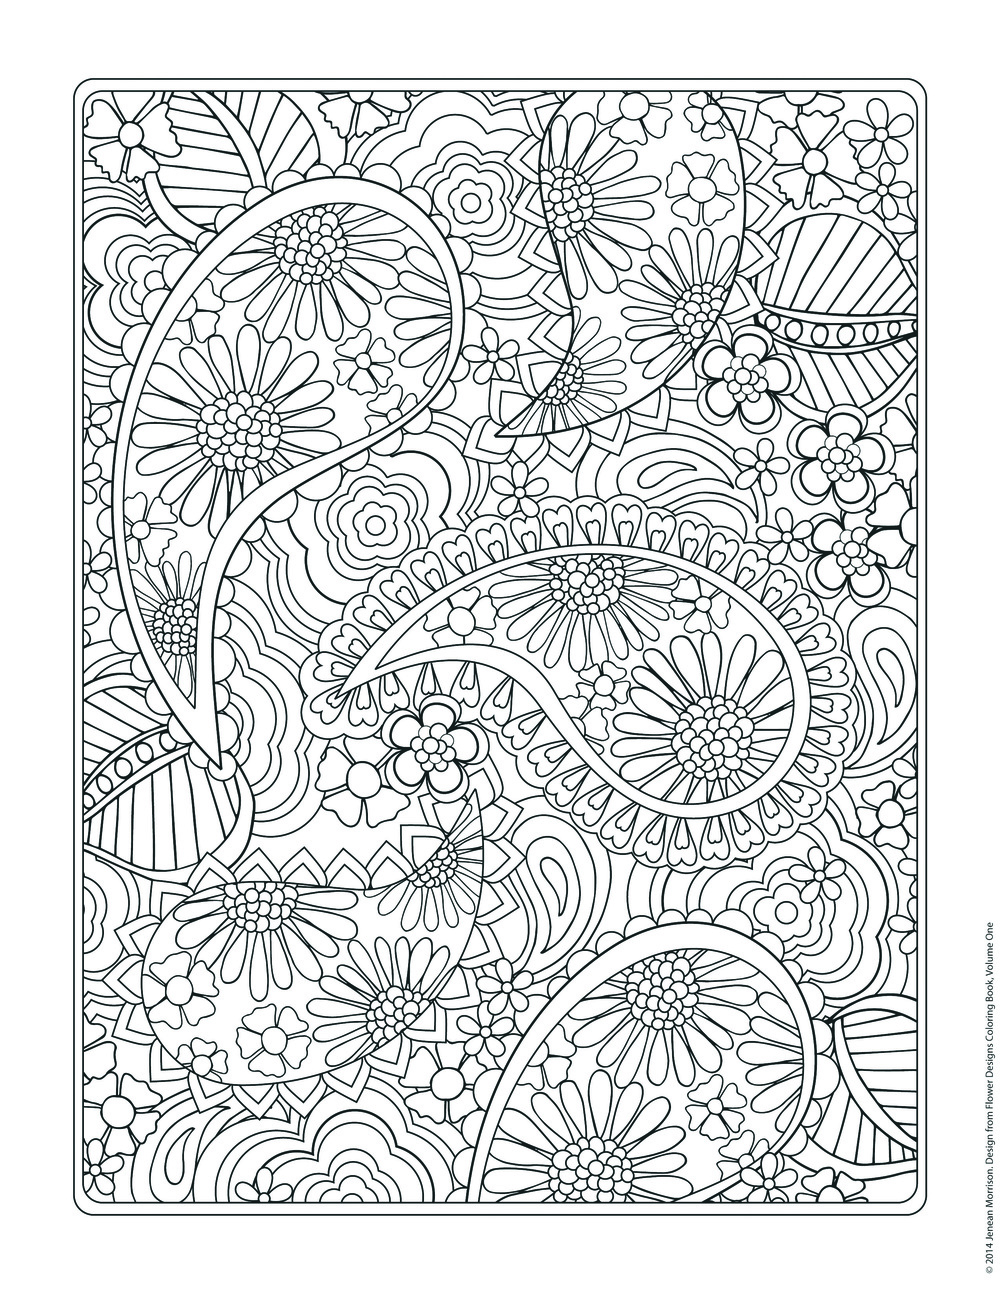 free coloring page from jenean morrisons flower designs coloring book